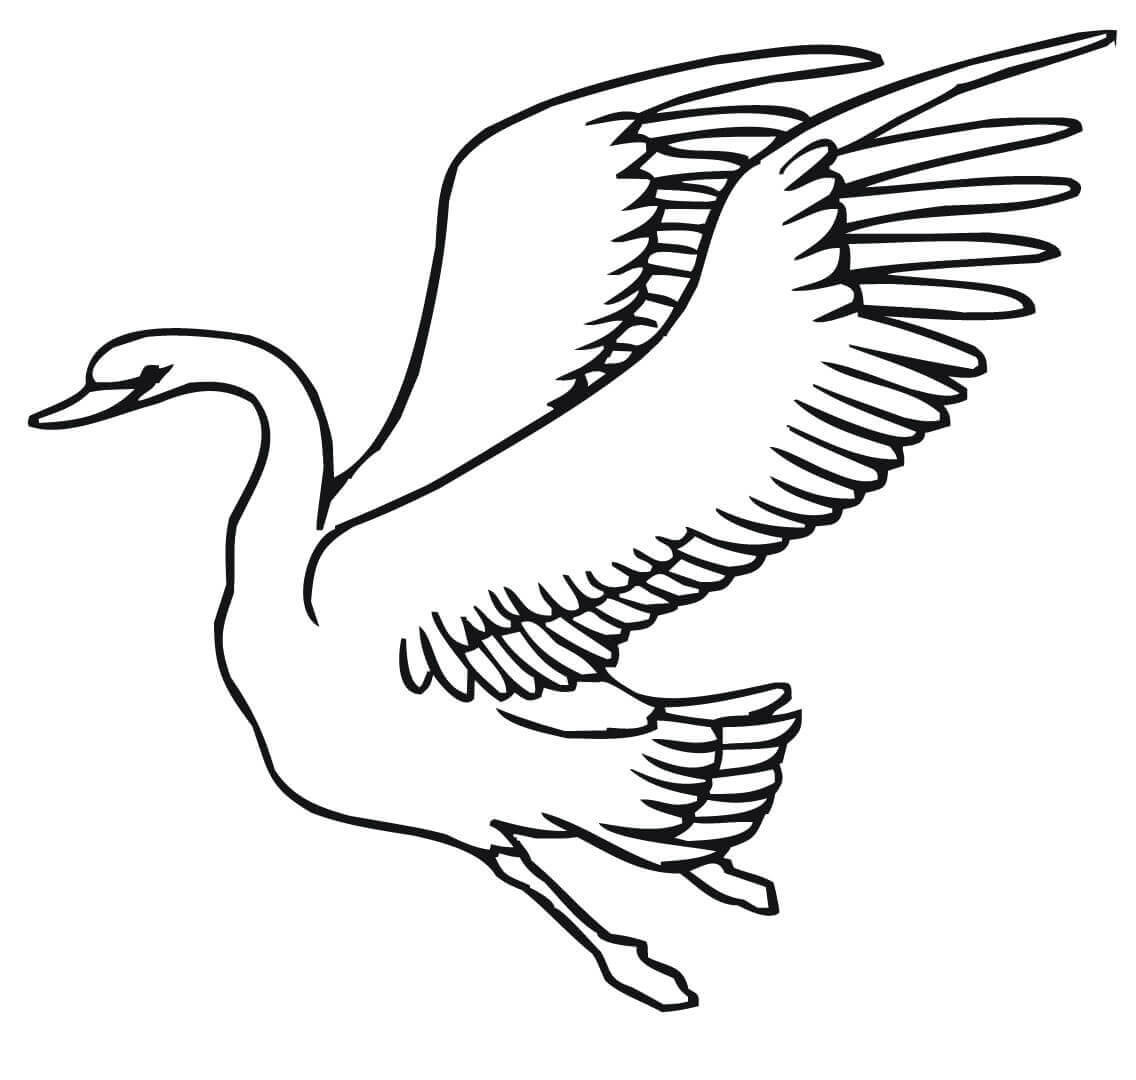 1136x1080 Flying Swans Coloring Pages